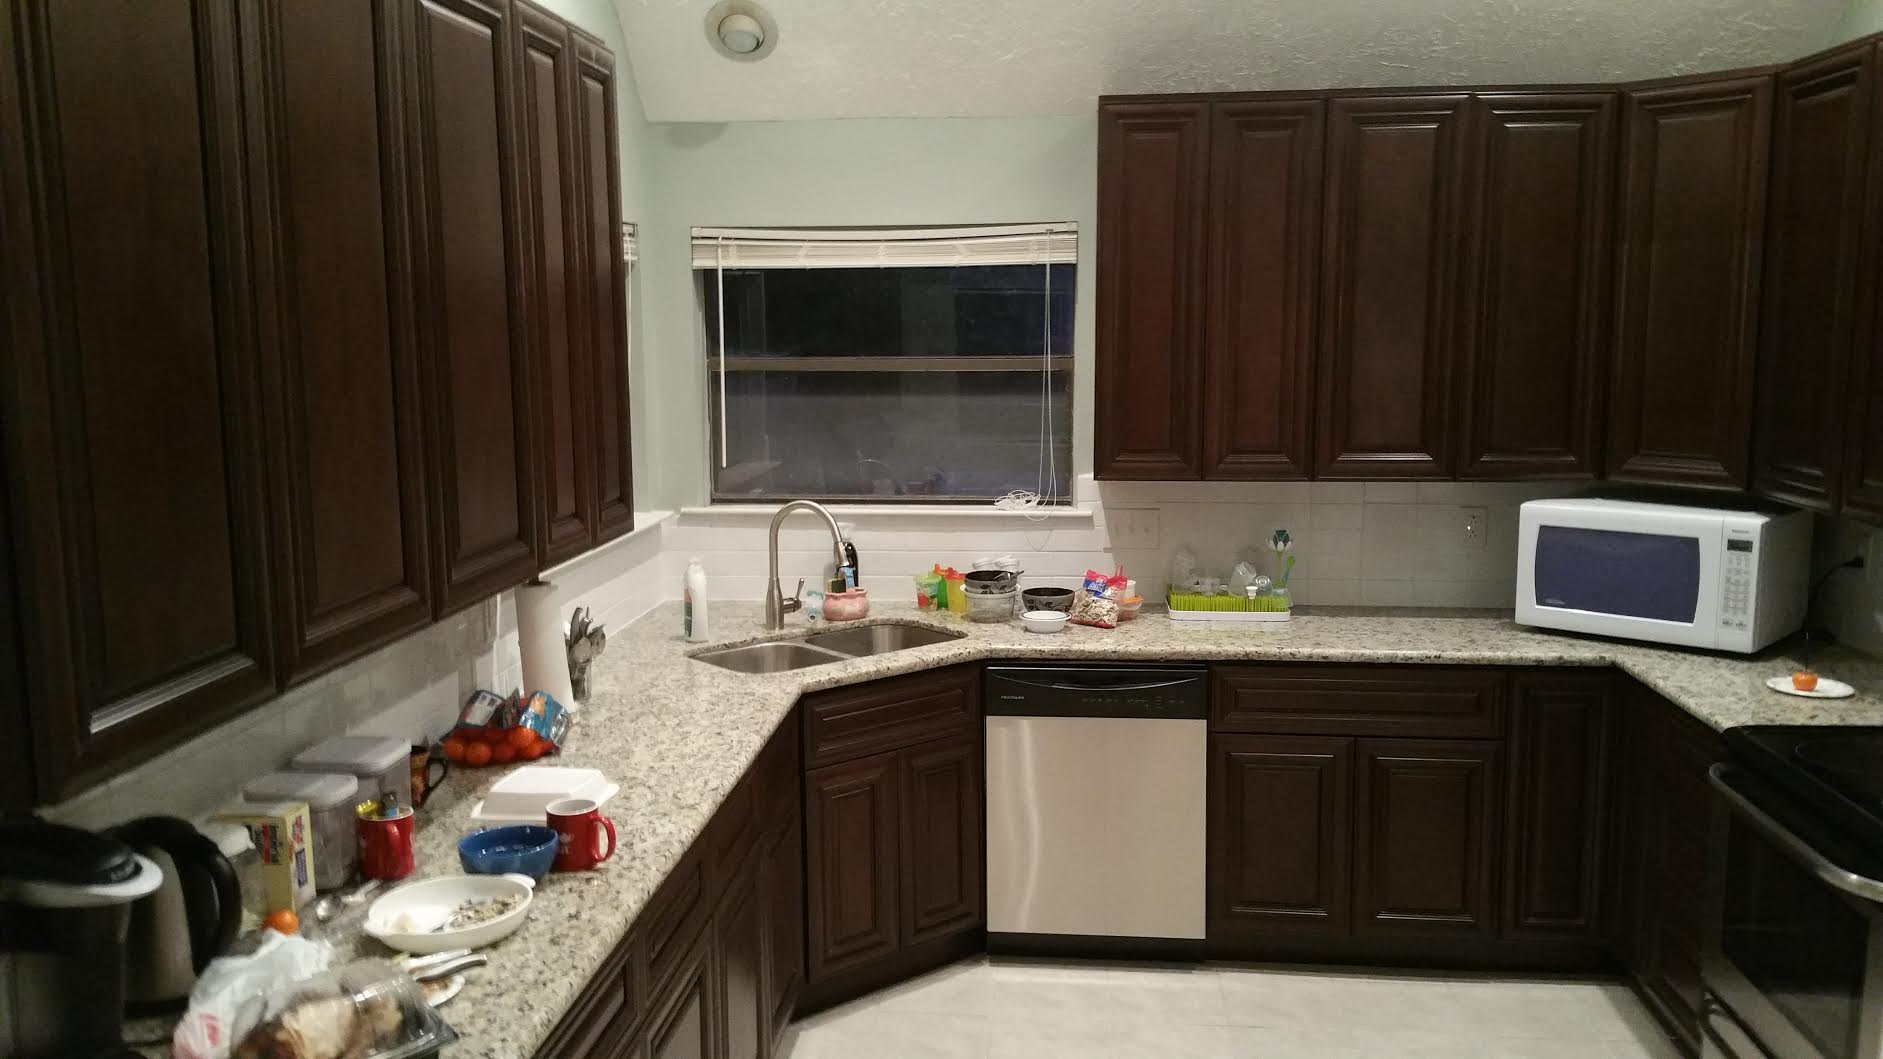 houston remodeling contractors just finished this kitchen remodel kitchen remodel contractors Houston Remodeling Contractors just finished this kitchen remodel foto2 foto4